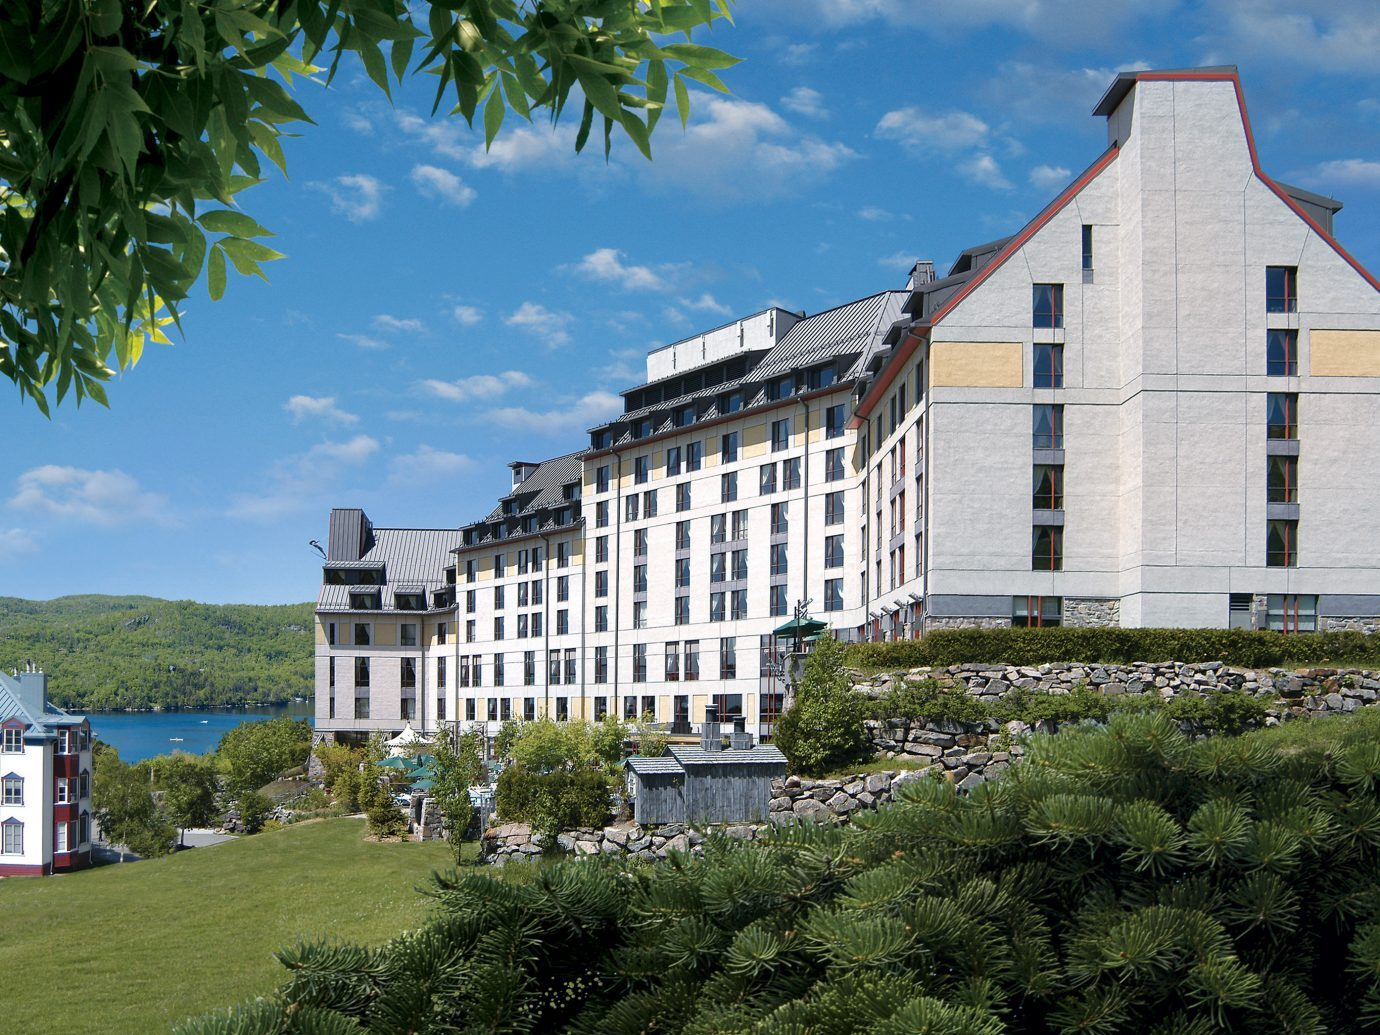 Exterior of the Fairmont Tremblant, Mont-Tremblant, QC